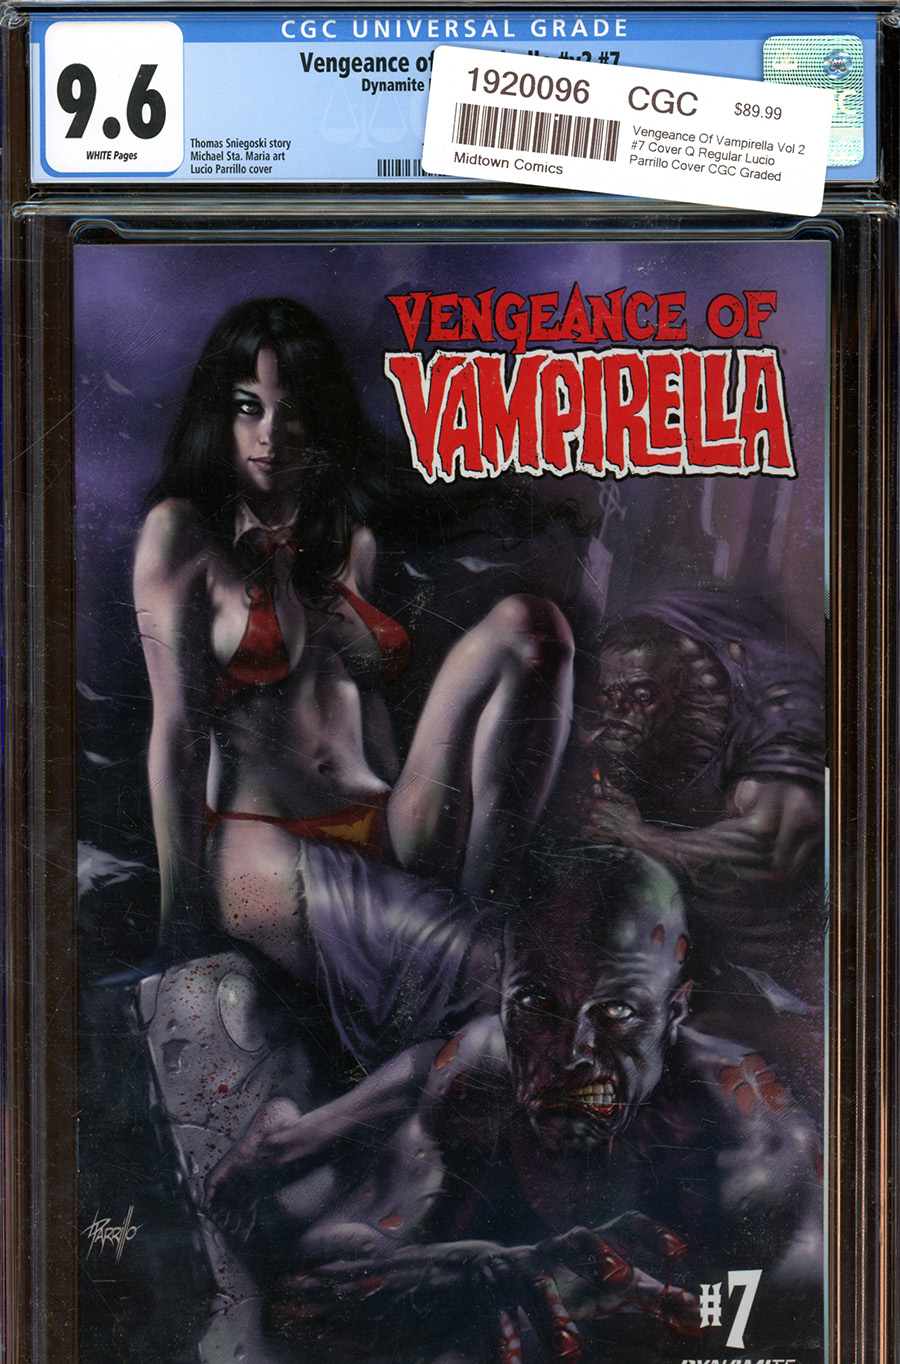 Vengeance Of Vampirella Vol 2 #7 Cover Q Regular Lucio Parrillo Cover CGC Graded